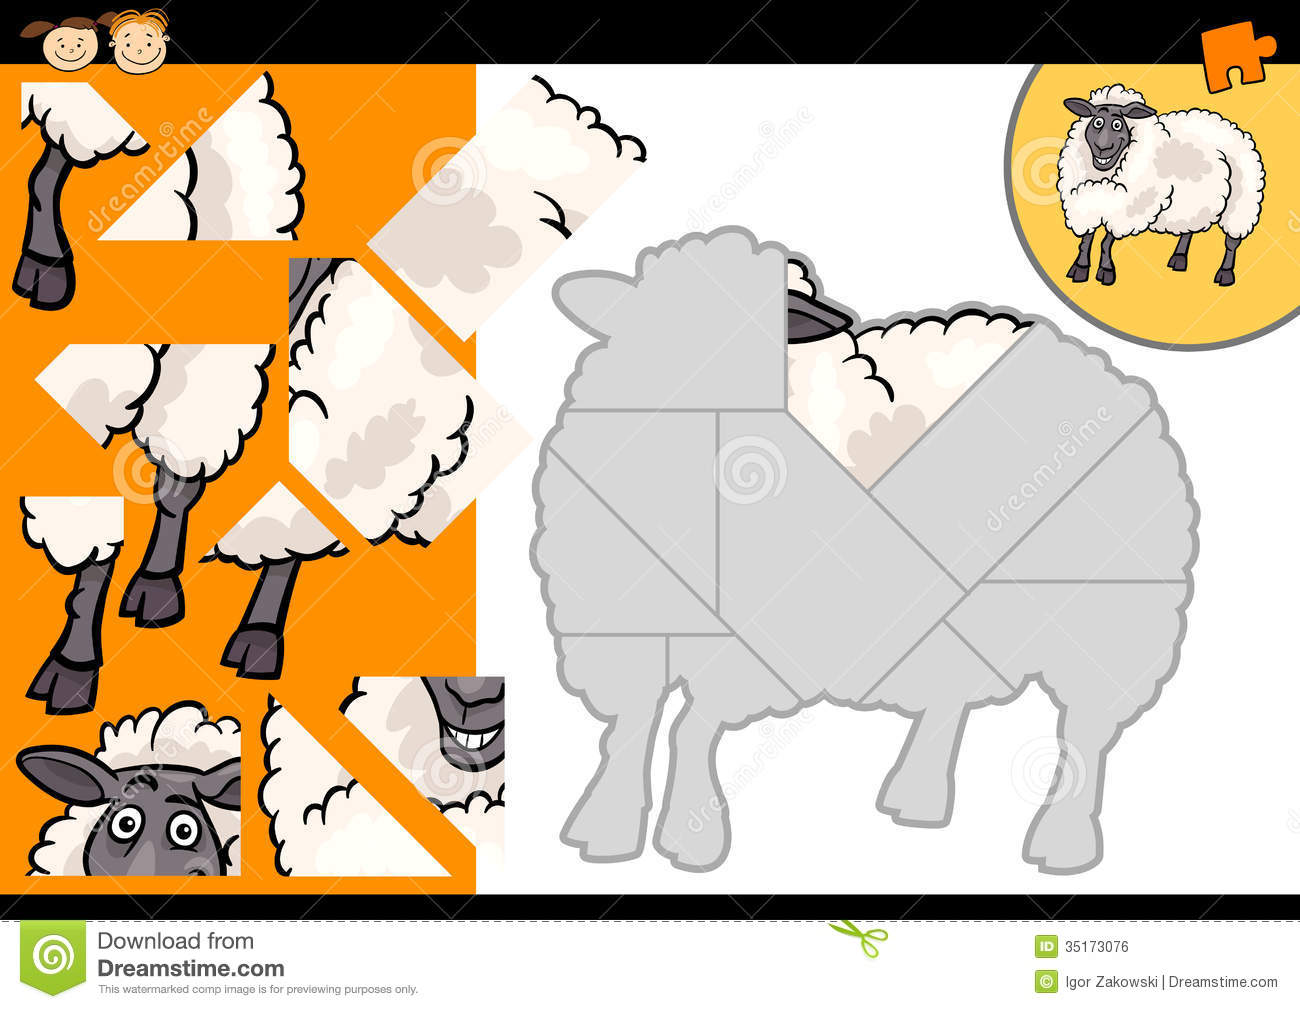 Cartoon Farm Sheep Puzzle Game Royalty Free Stock Image